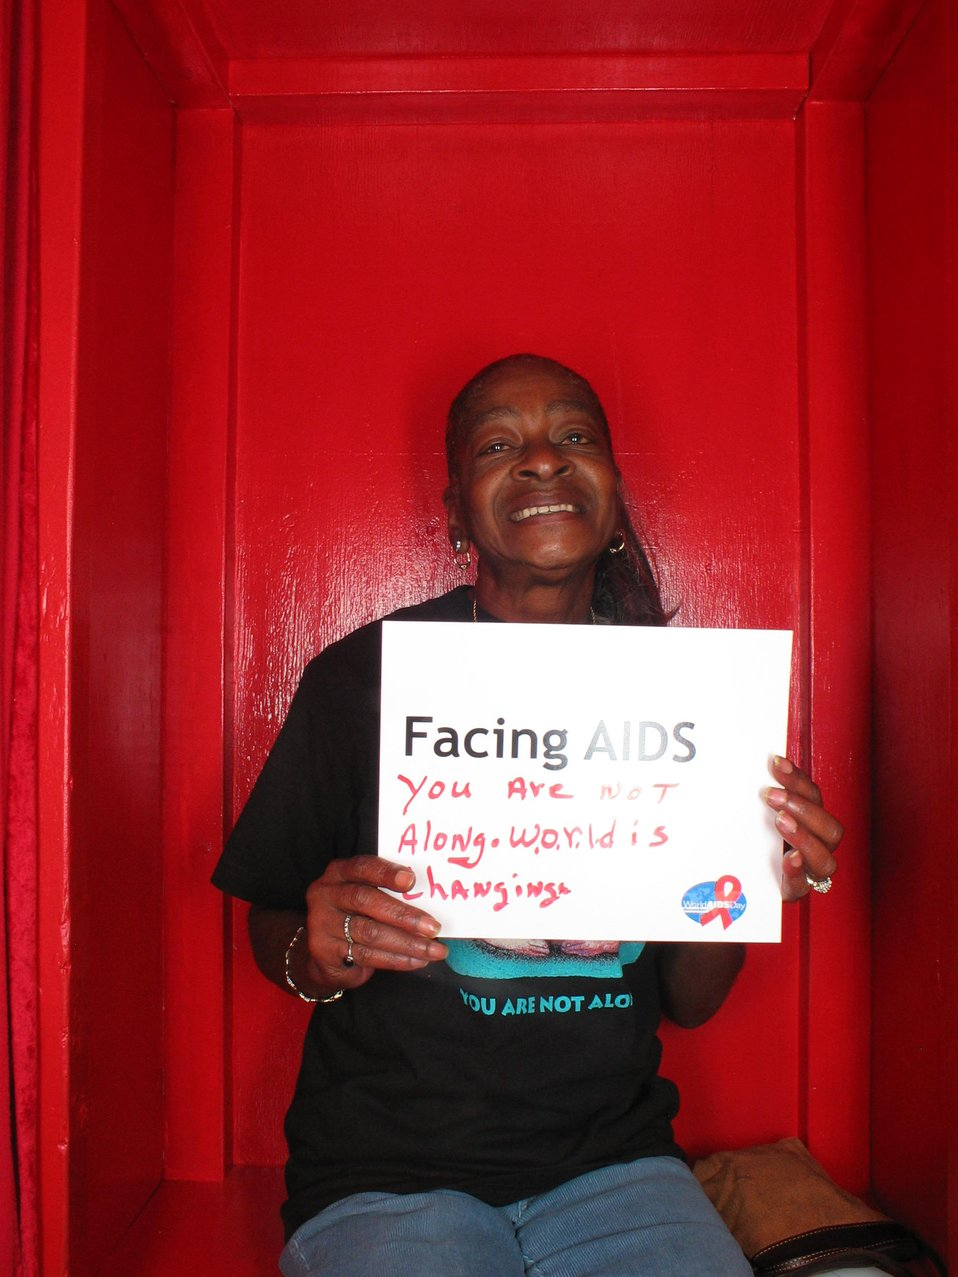 Facing AIDS you are not alone. World is changing.